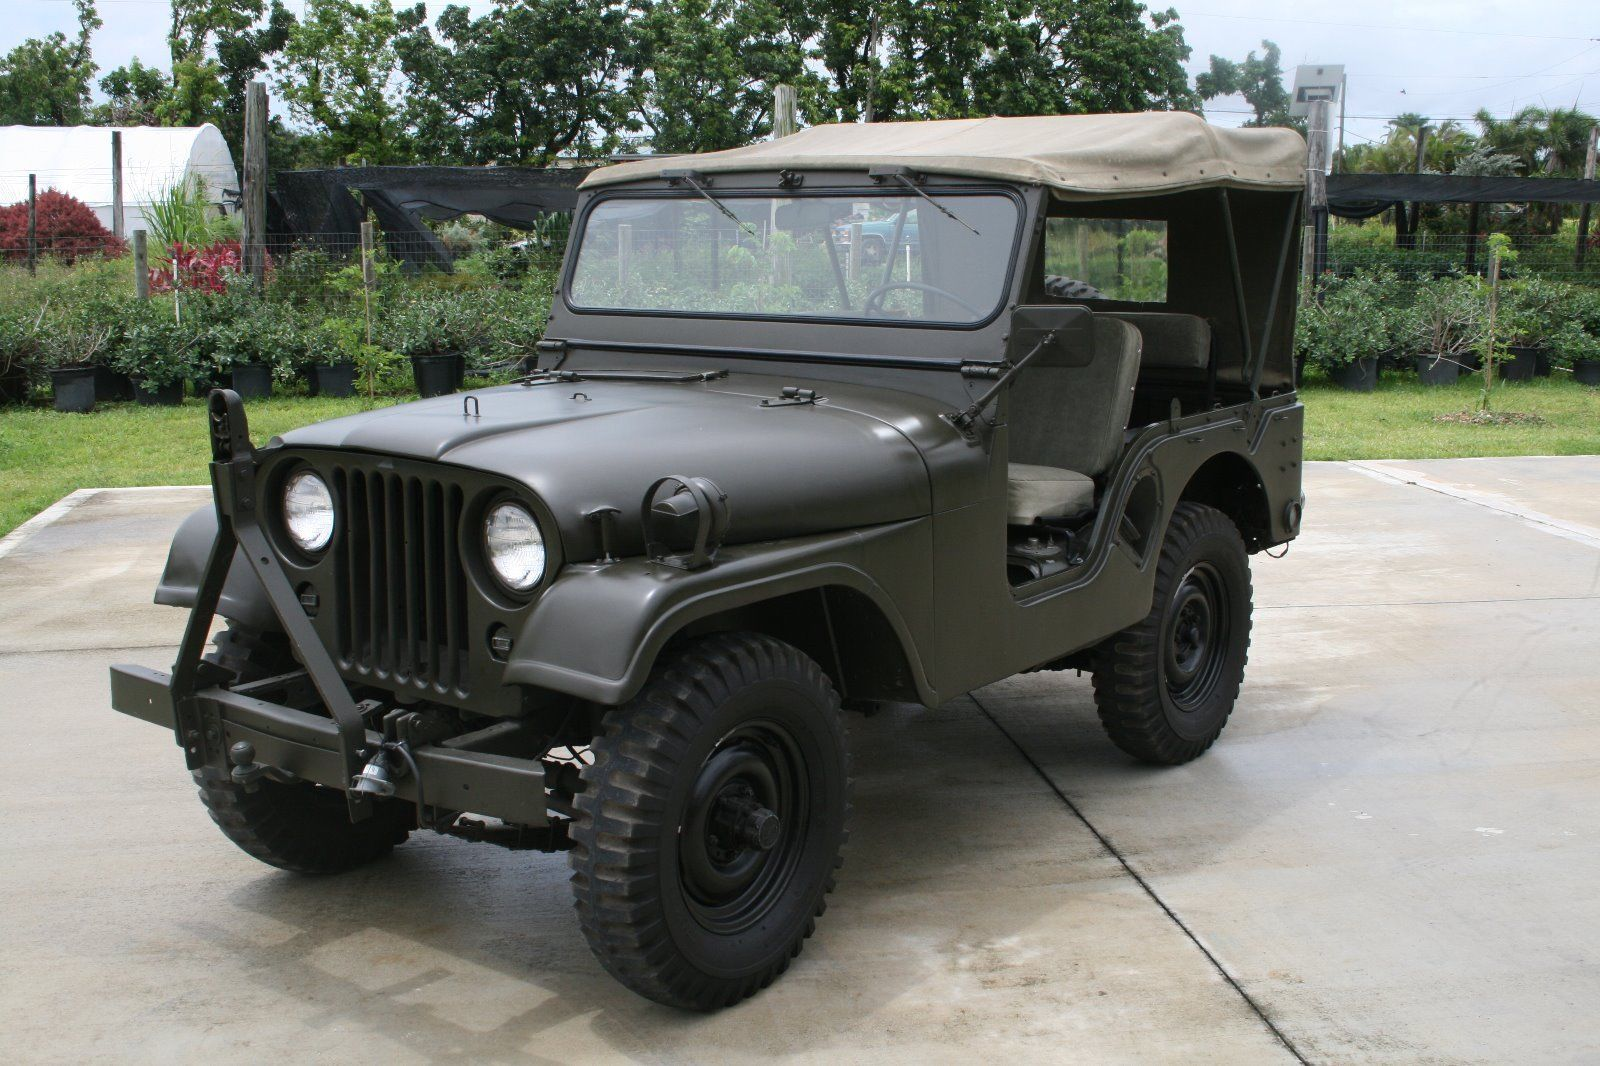 movie car 1953 Willys Jeep M38A1 military for sale